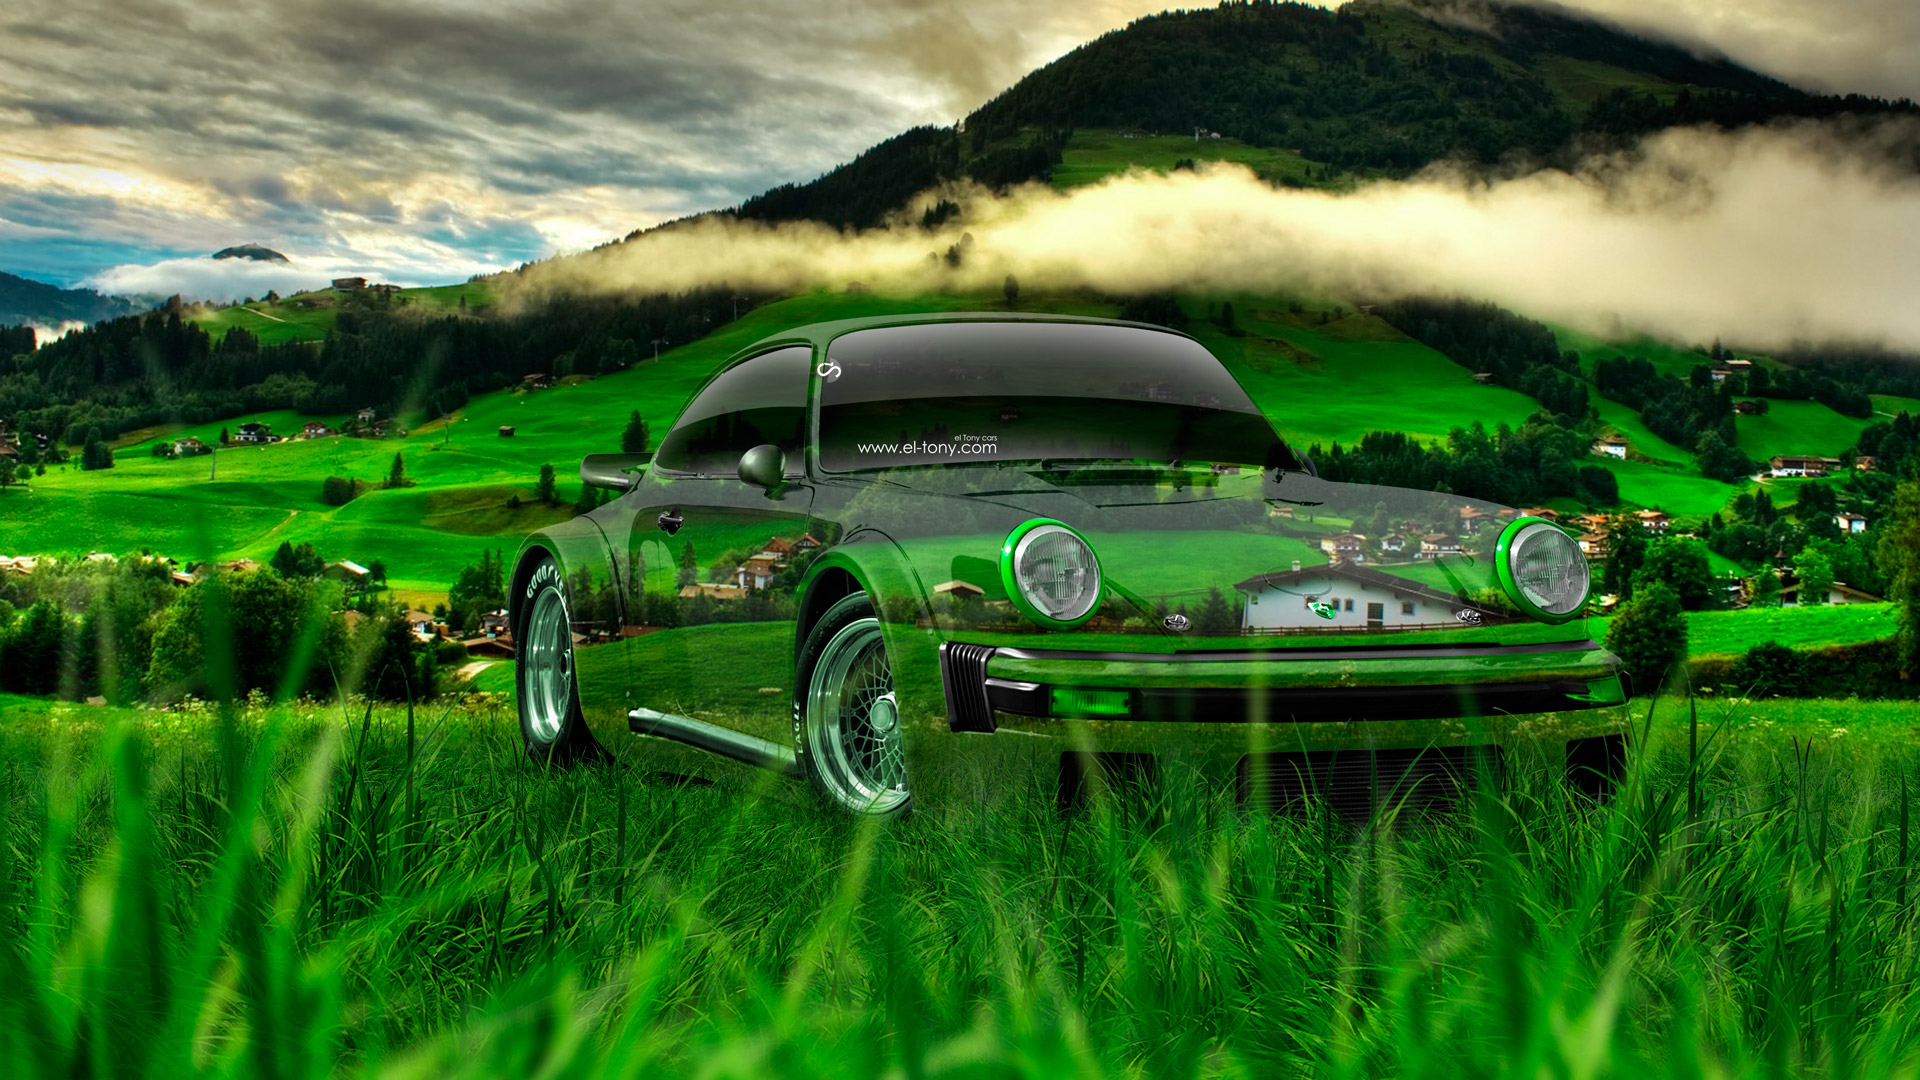 Merveilleux ... Porsche 911 Turbo 1976 Tuning Crystal Nature Car 2014